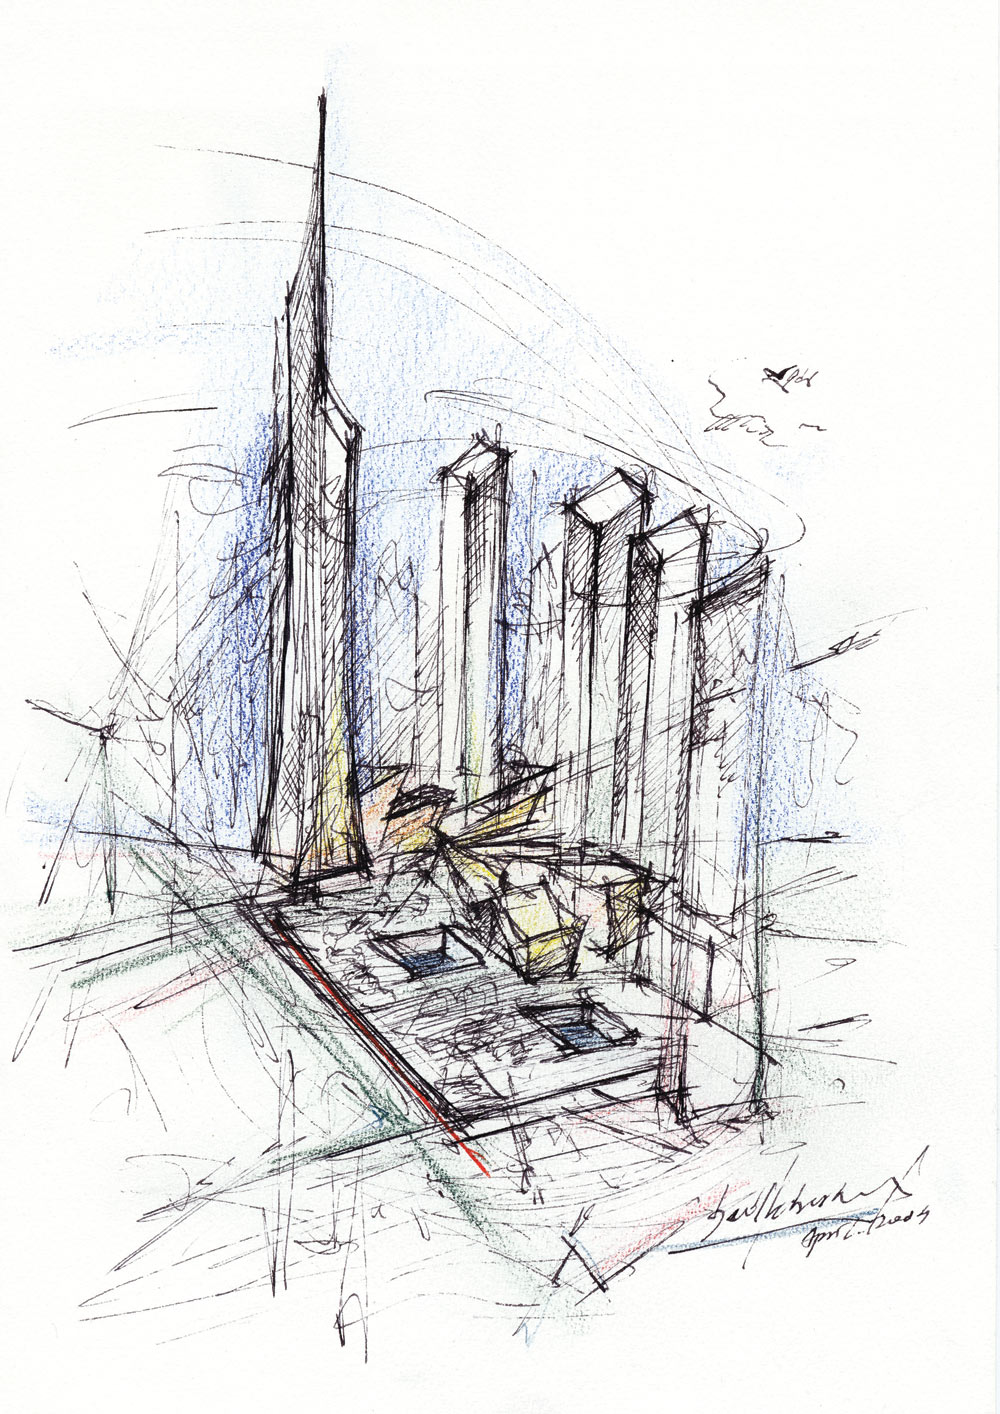 World Trade Center Master plan drawing